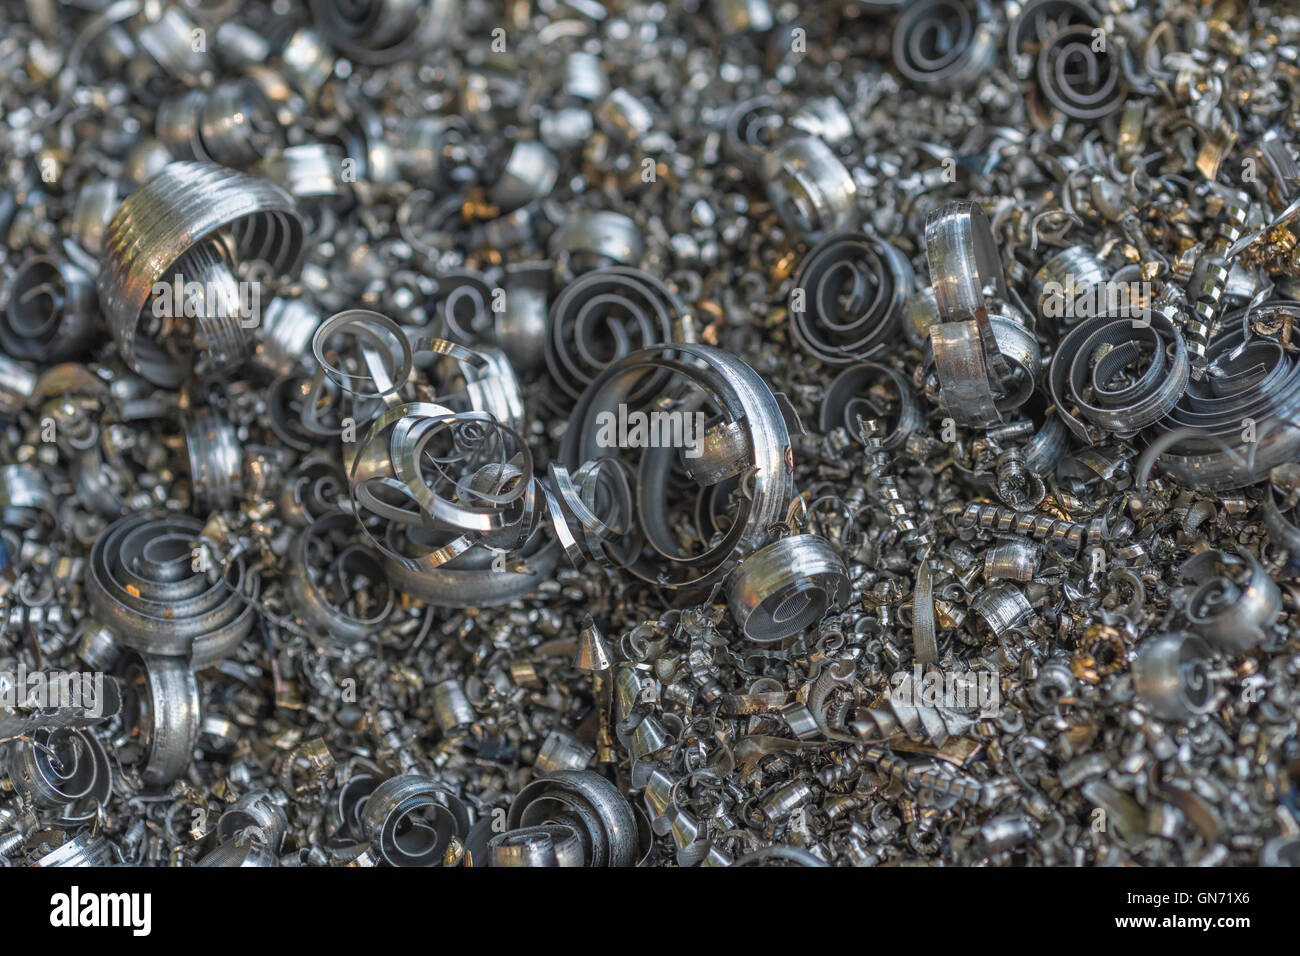 Close shot of metal turnings / industrial swarf from CNC machining operations. Industrial waste, metal waste. - Stock Image